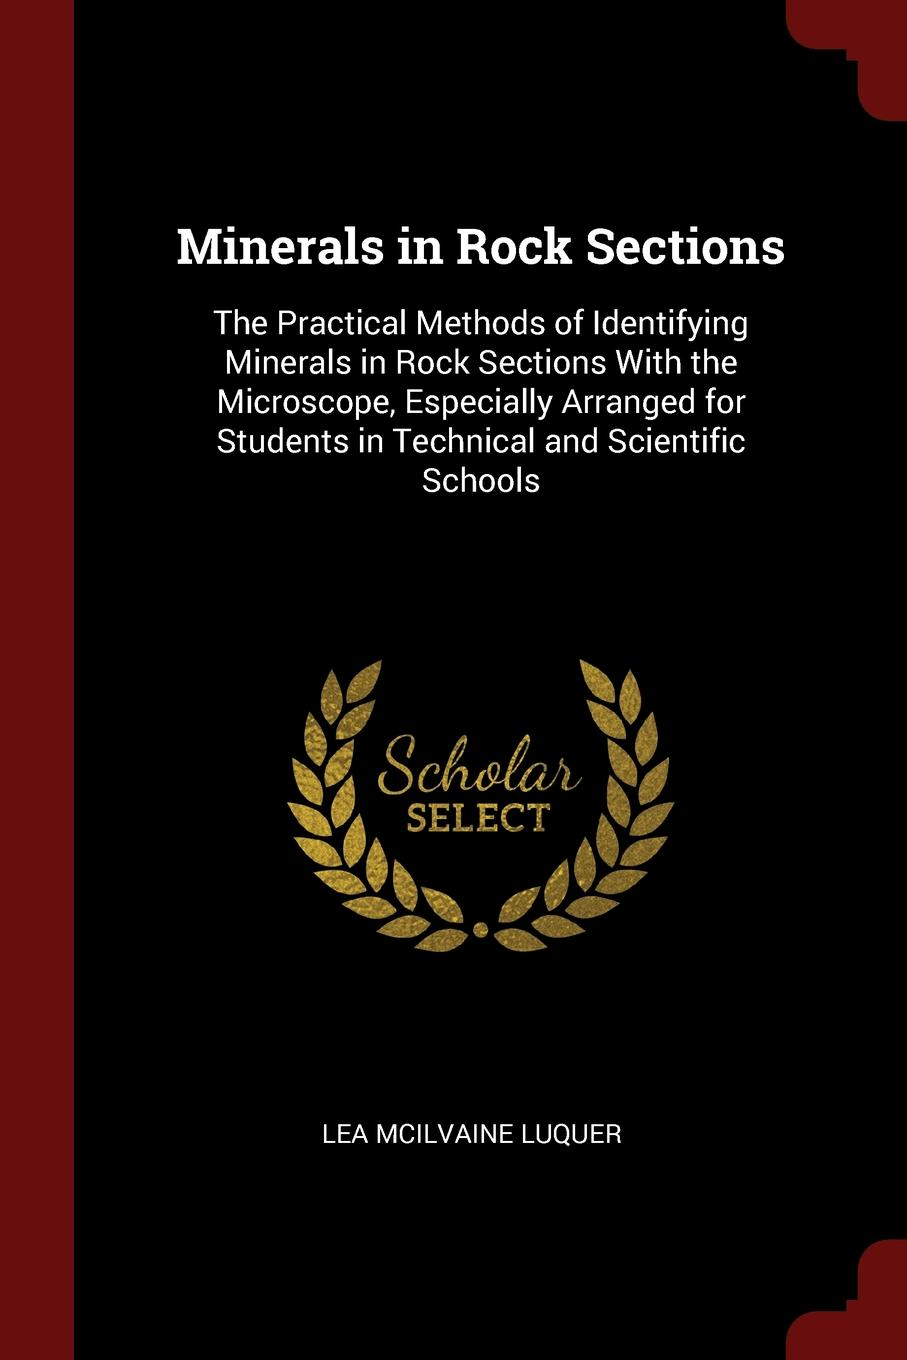 Lea McIlvaine Luquer Minerals in Rock Sections. The Practical Methods of Identifying Sections With the Microscope, Especially Arranged for Students Technical and Scientific Schools